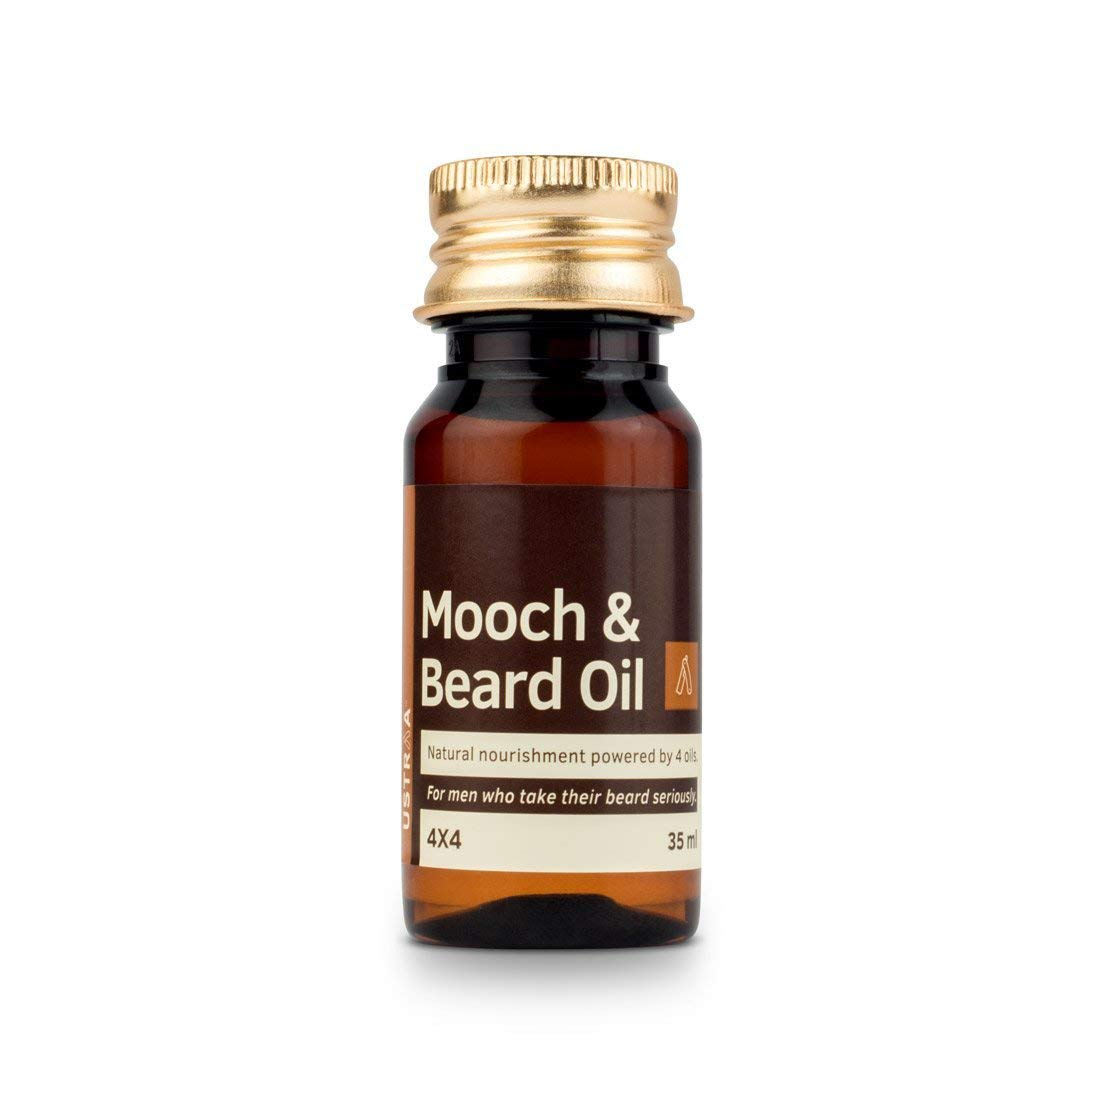 Glamorous Hub - Ustraa Mooch and Beard Oil 4x4 for Men, 35ml by Glamorous Hub